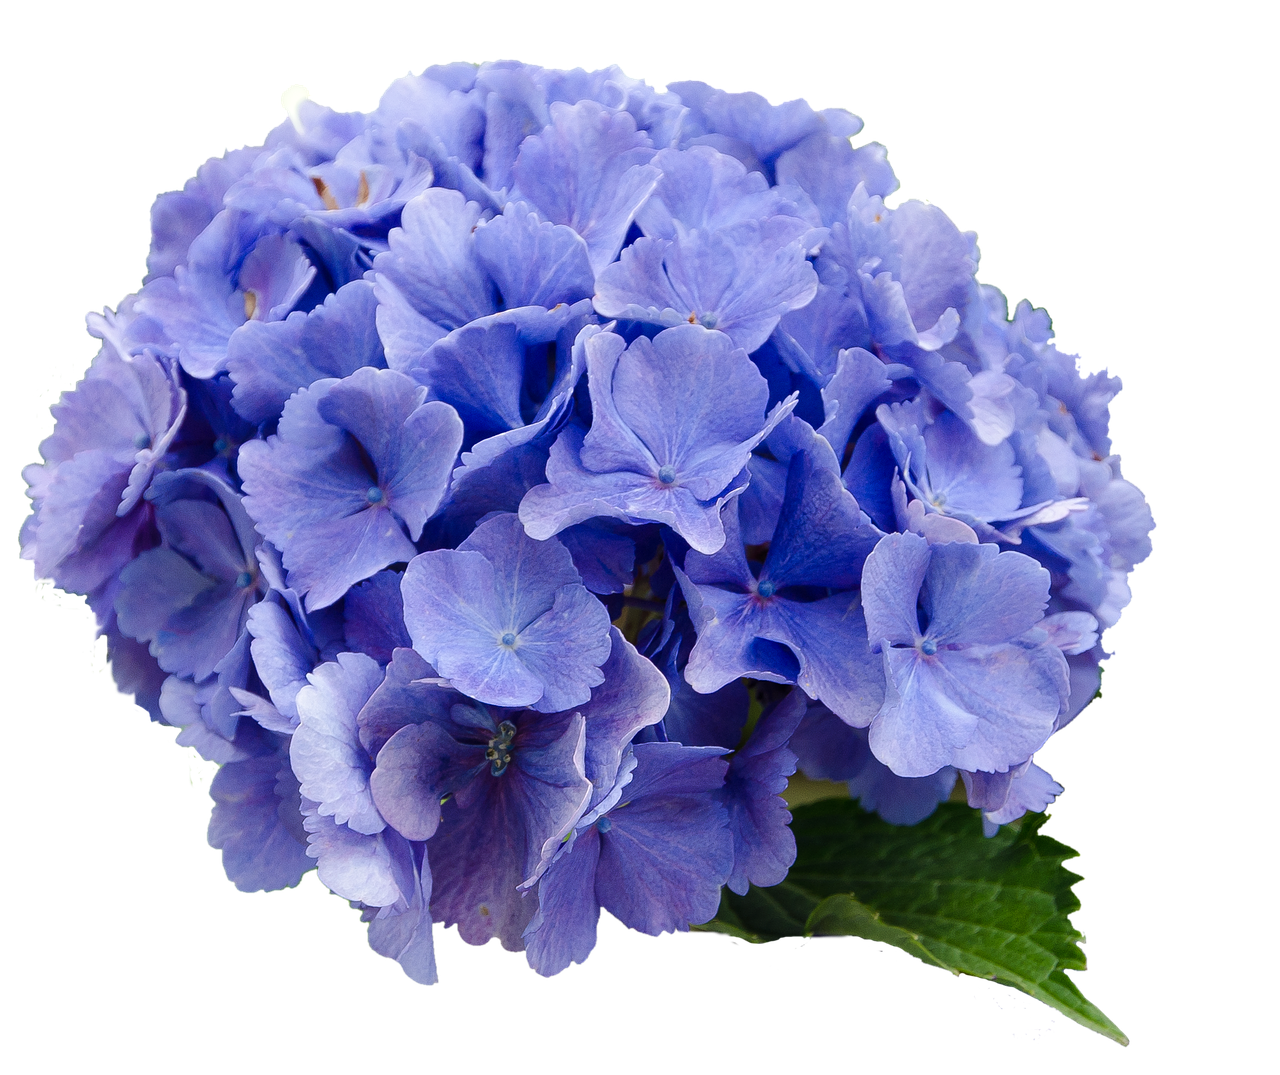 Flower blue nature free. Hydrangea transparent background clip freeuse